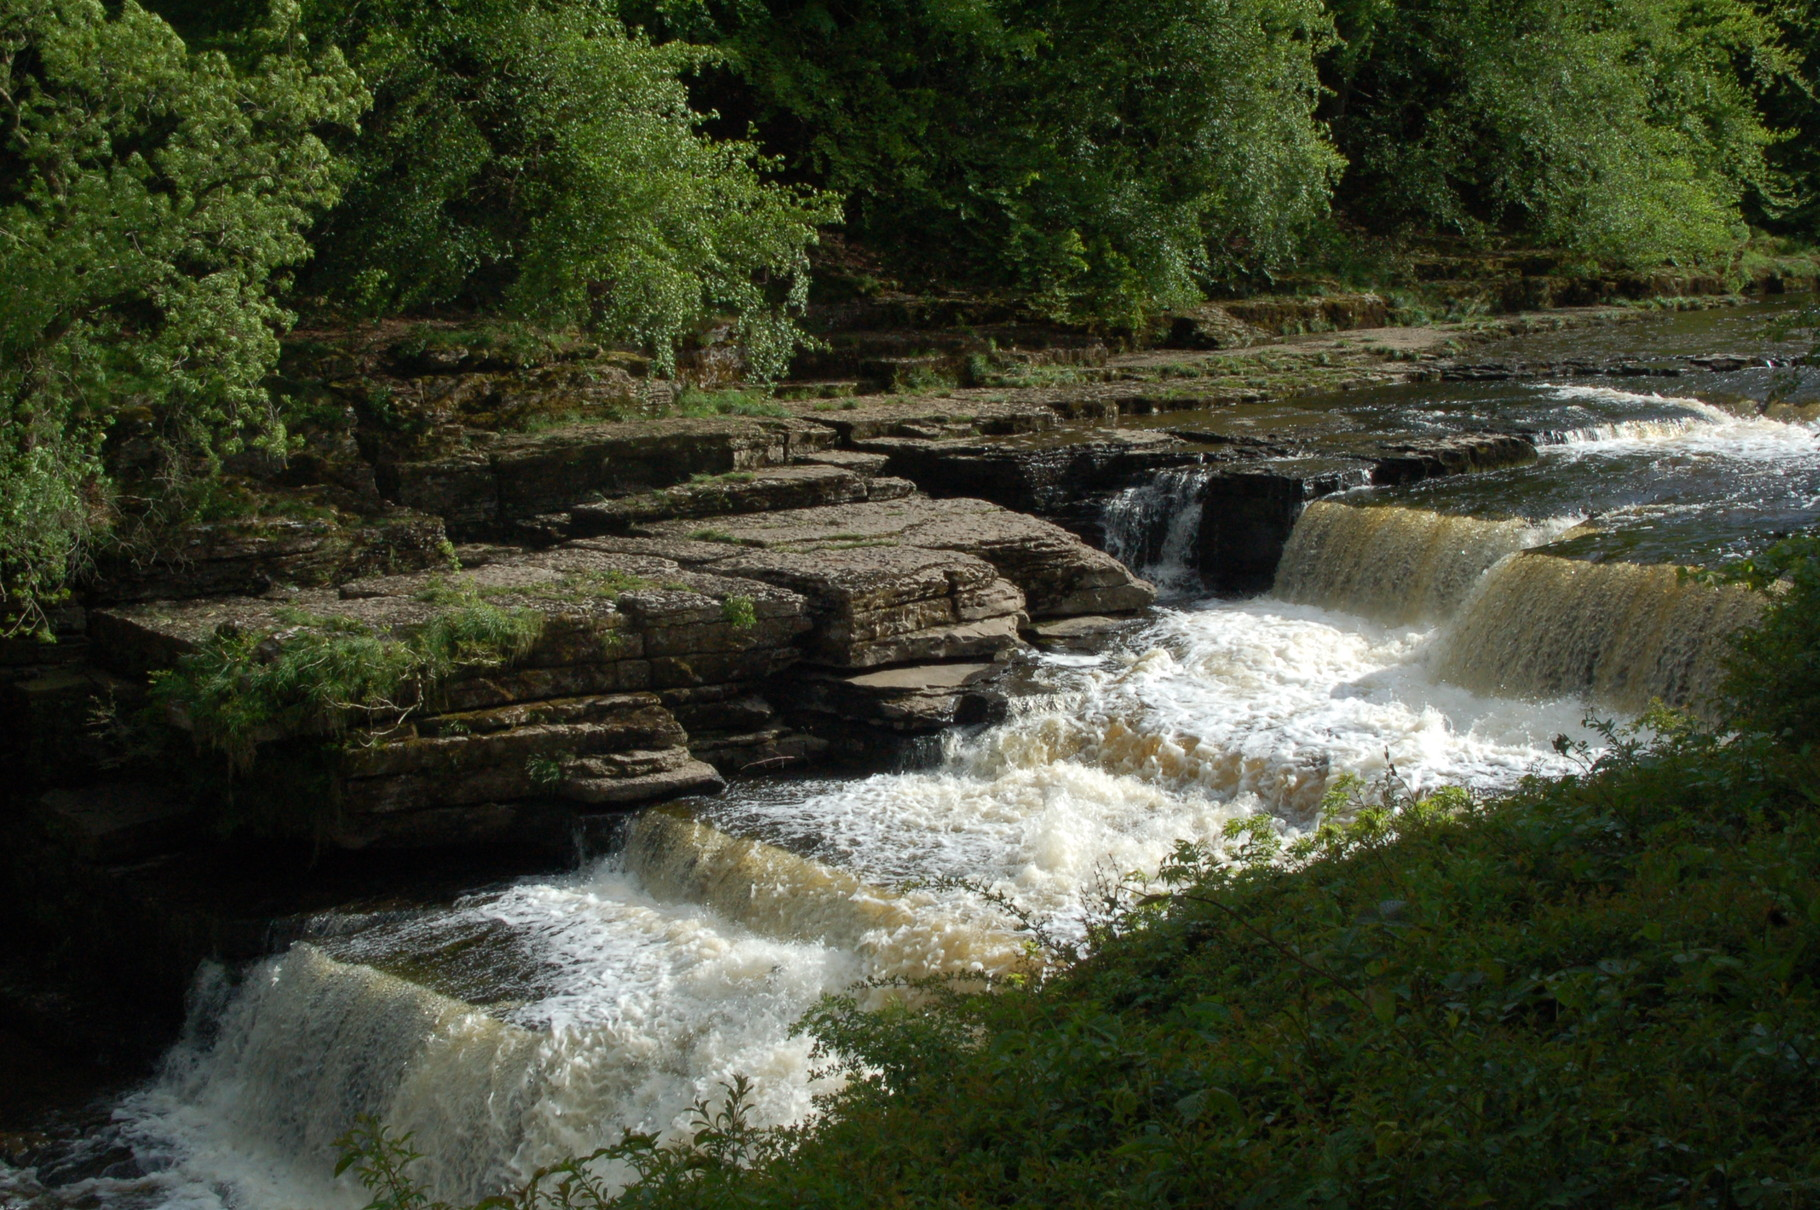 Aysgarth Lower Falls